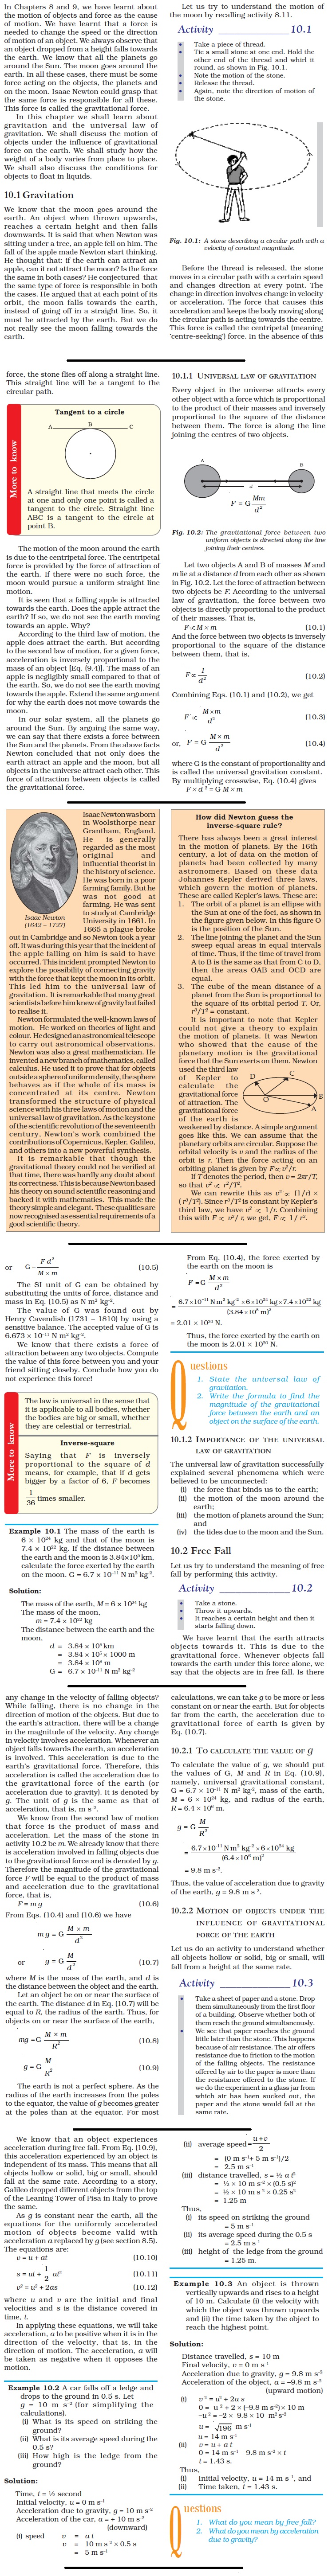 NCERT Class IX Science Chapter 10 Gravitation